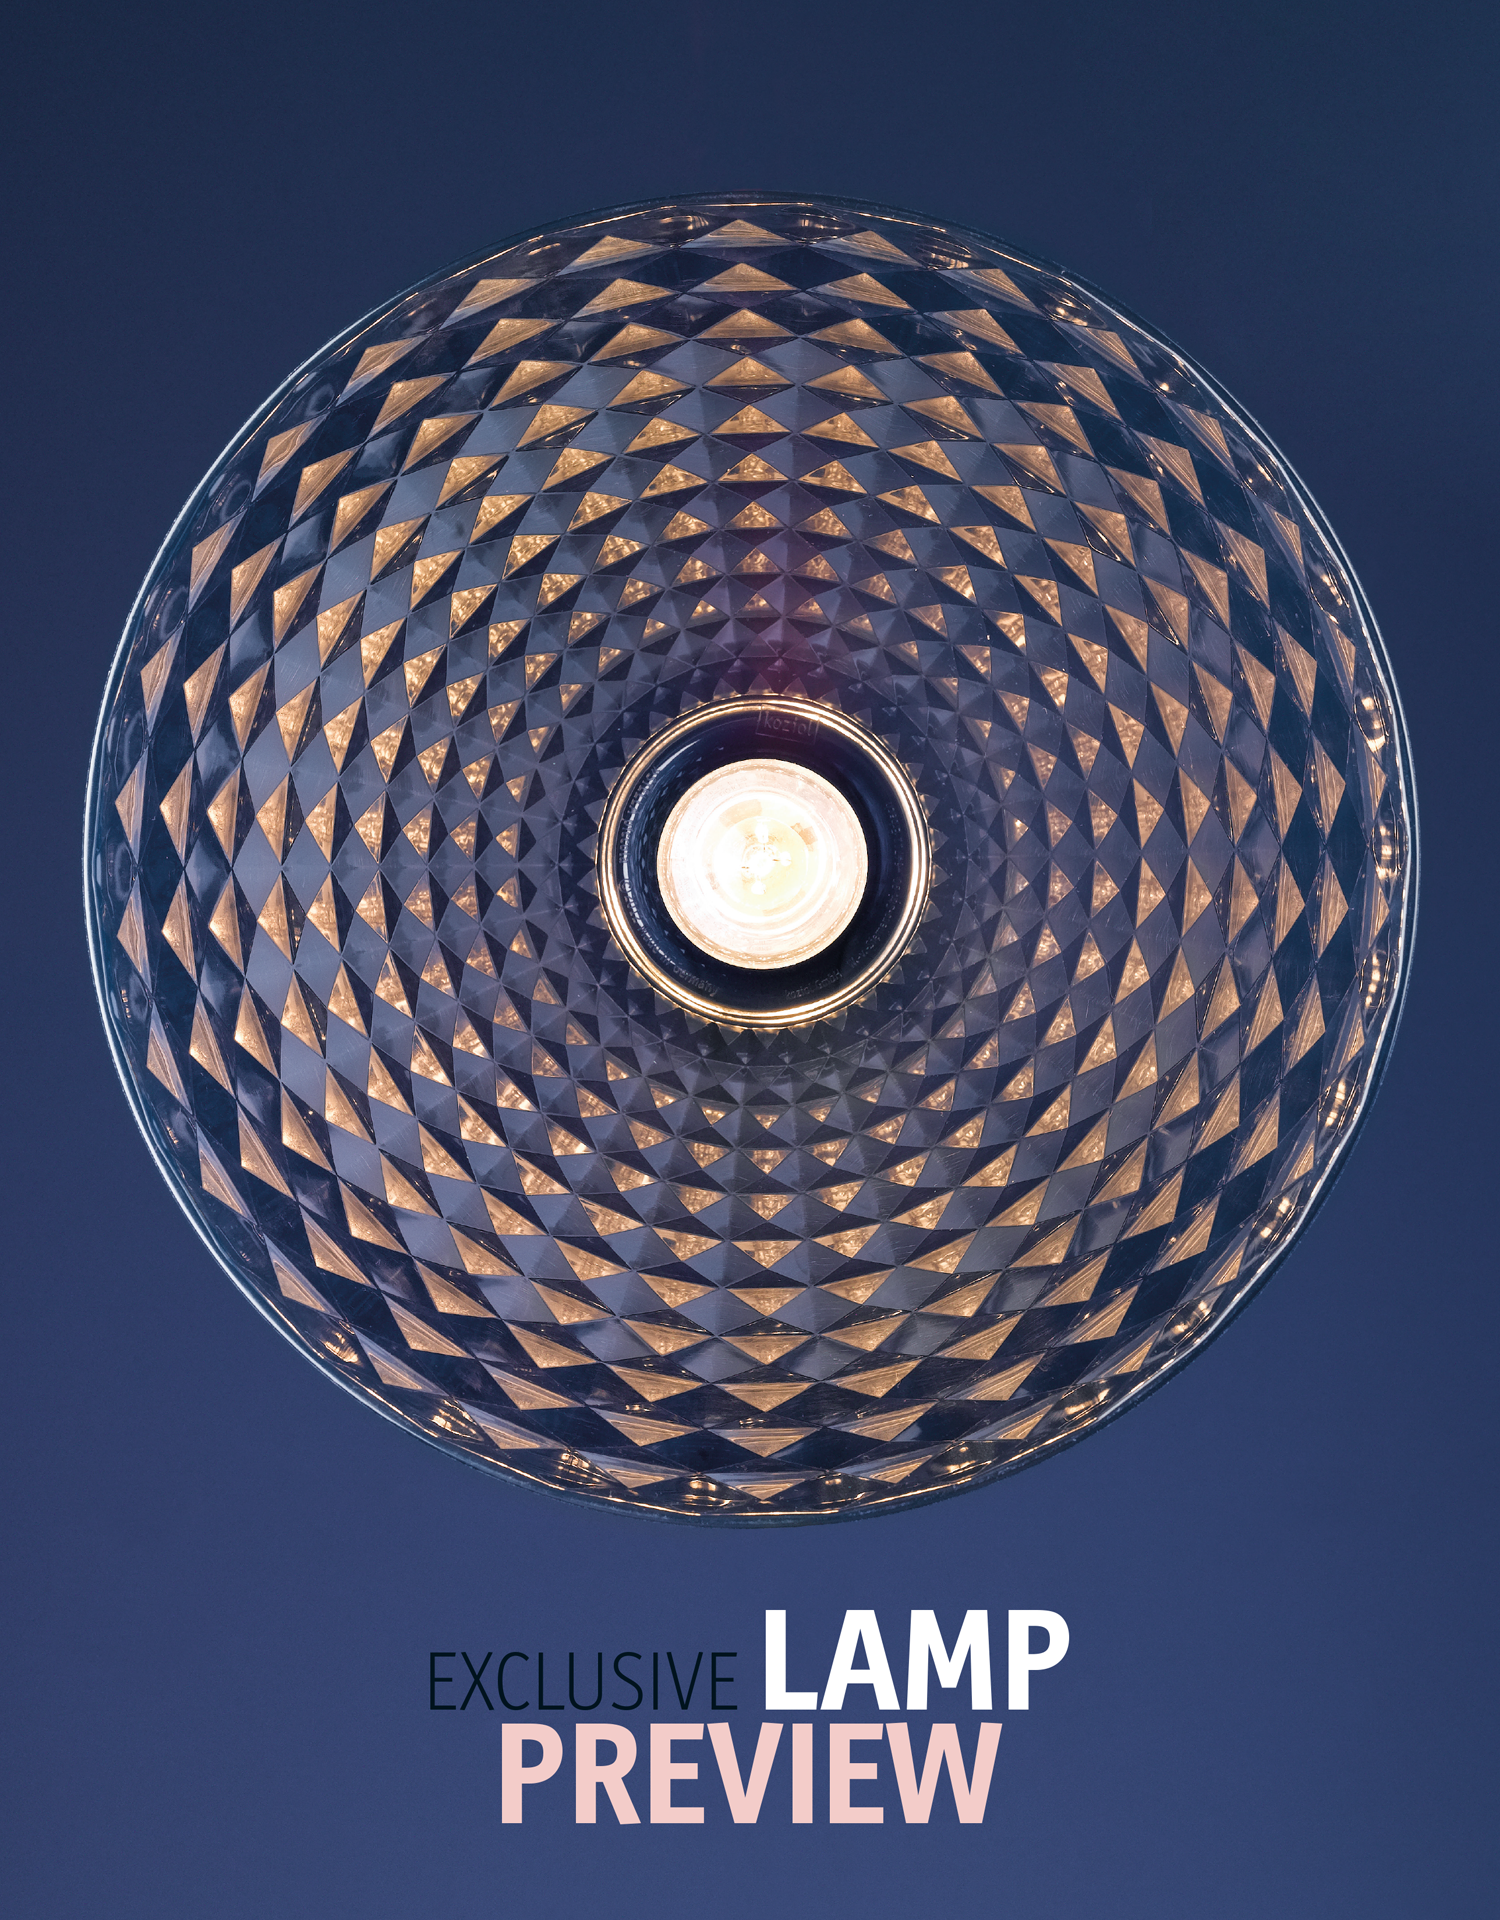 Exclusive Lamp Preview